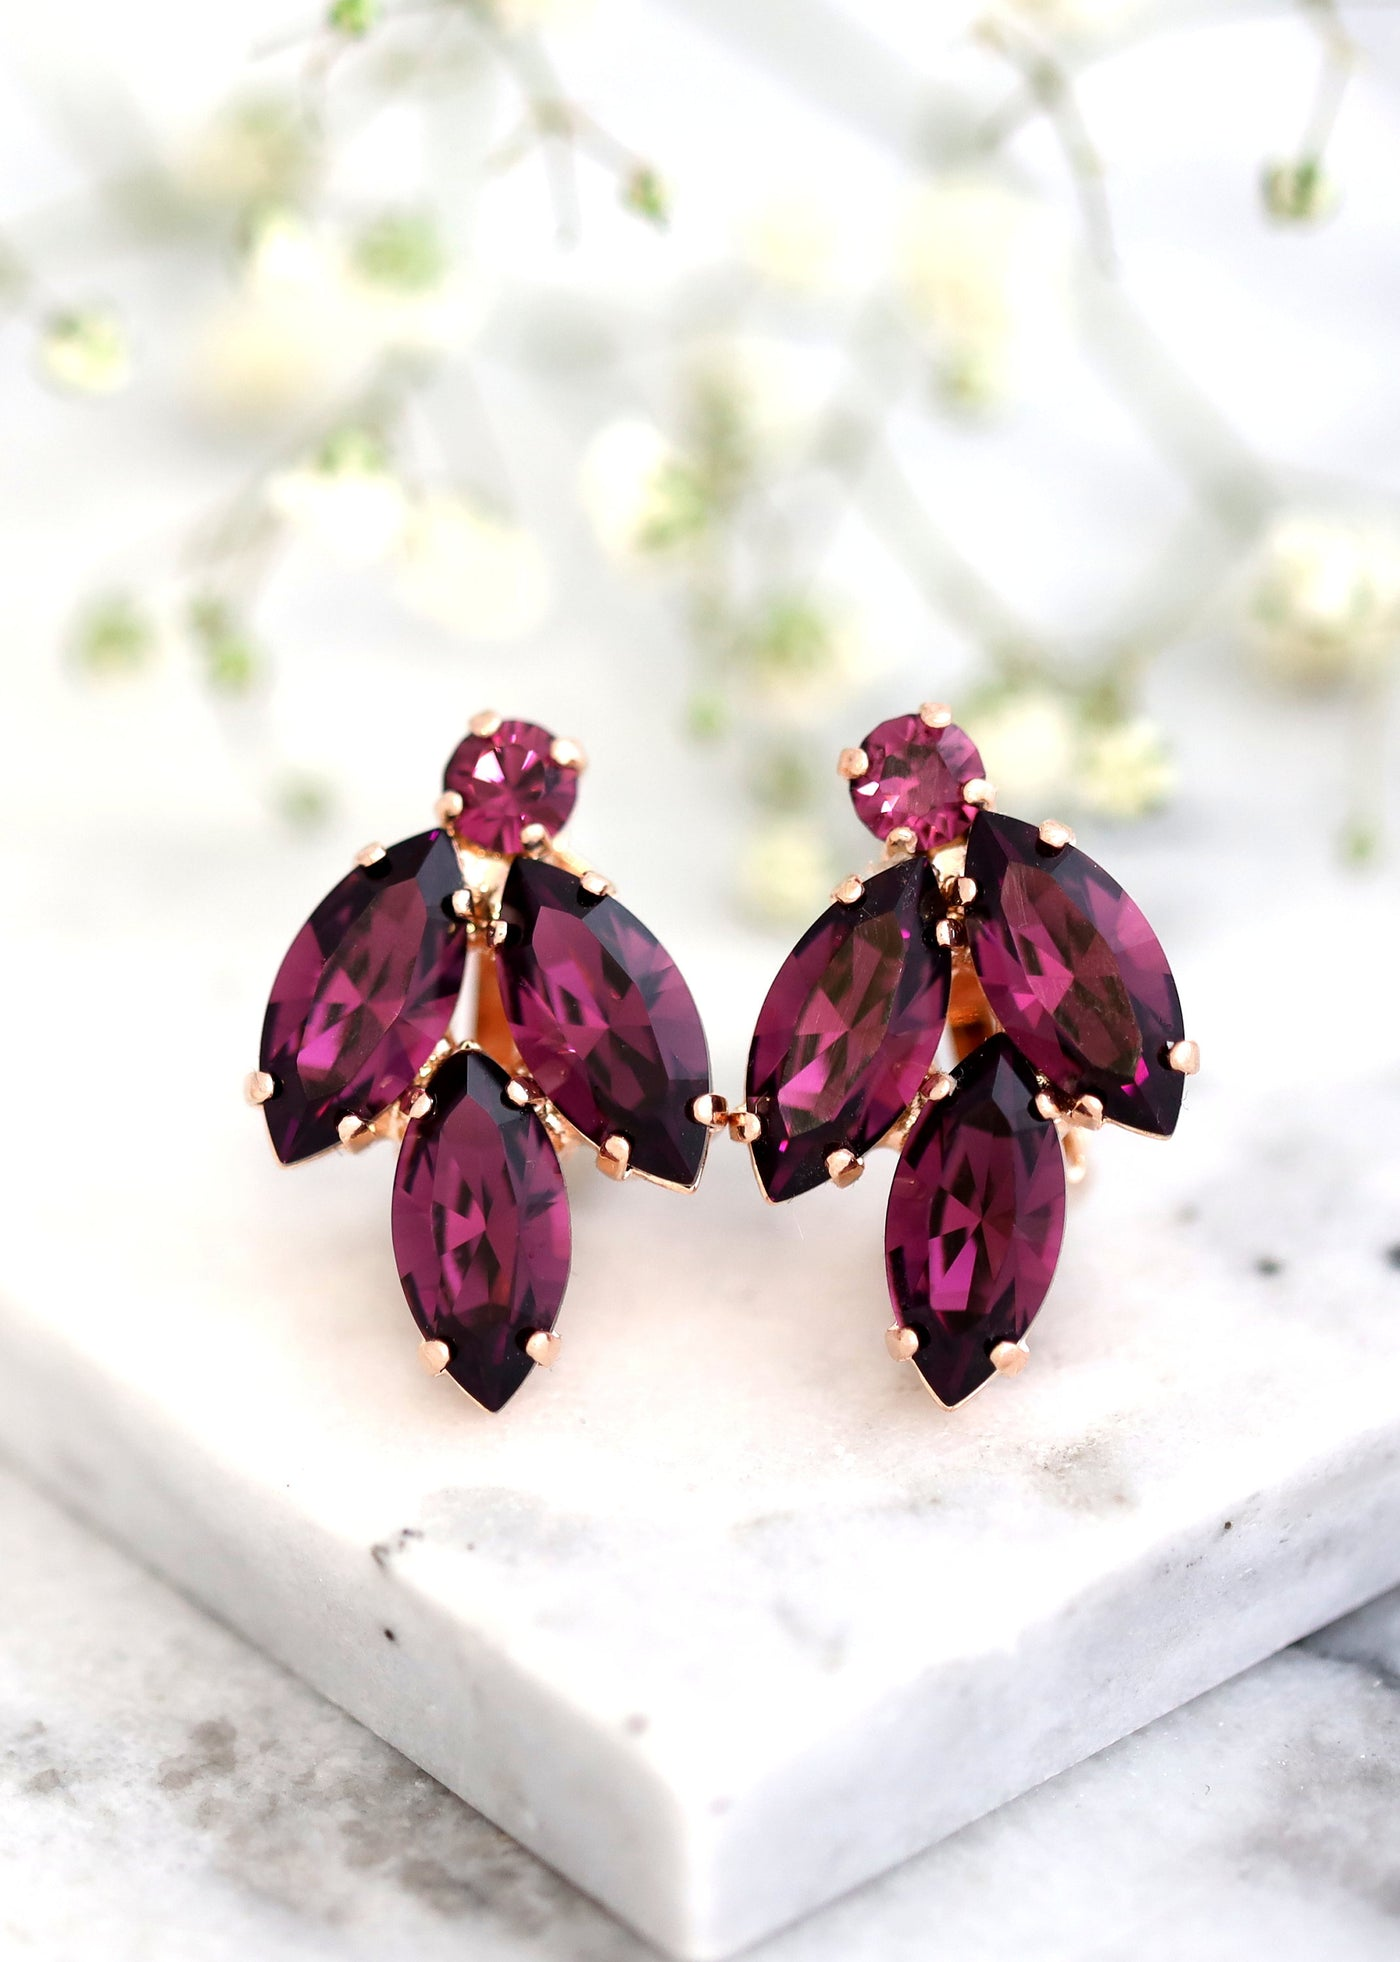 Purple Clip On Earrings, Bridal Purple Crystal Earrings, Swarovski Amethyst Earrings, Clip On Earrings, Bridesmaids Clip Ons Earrings,